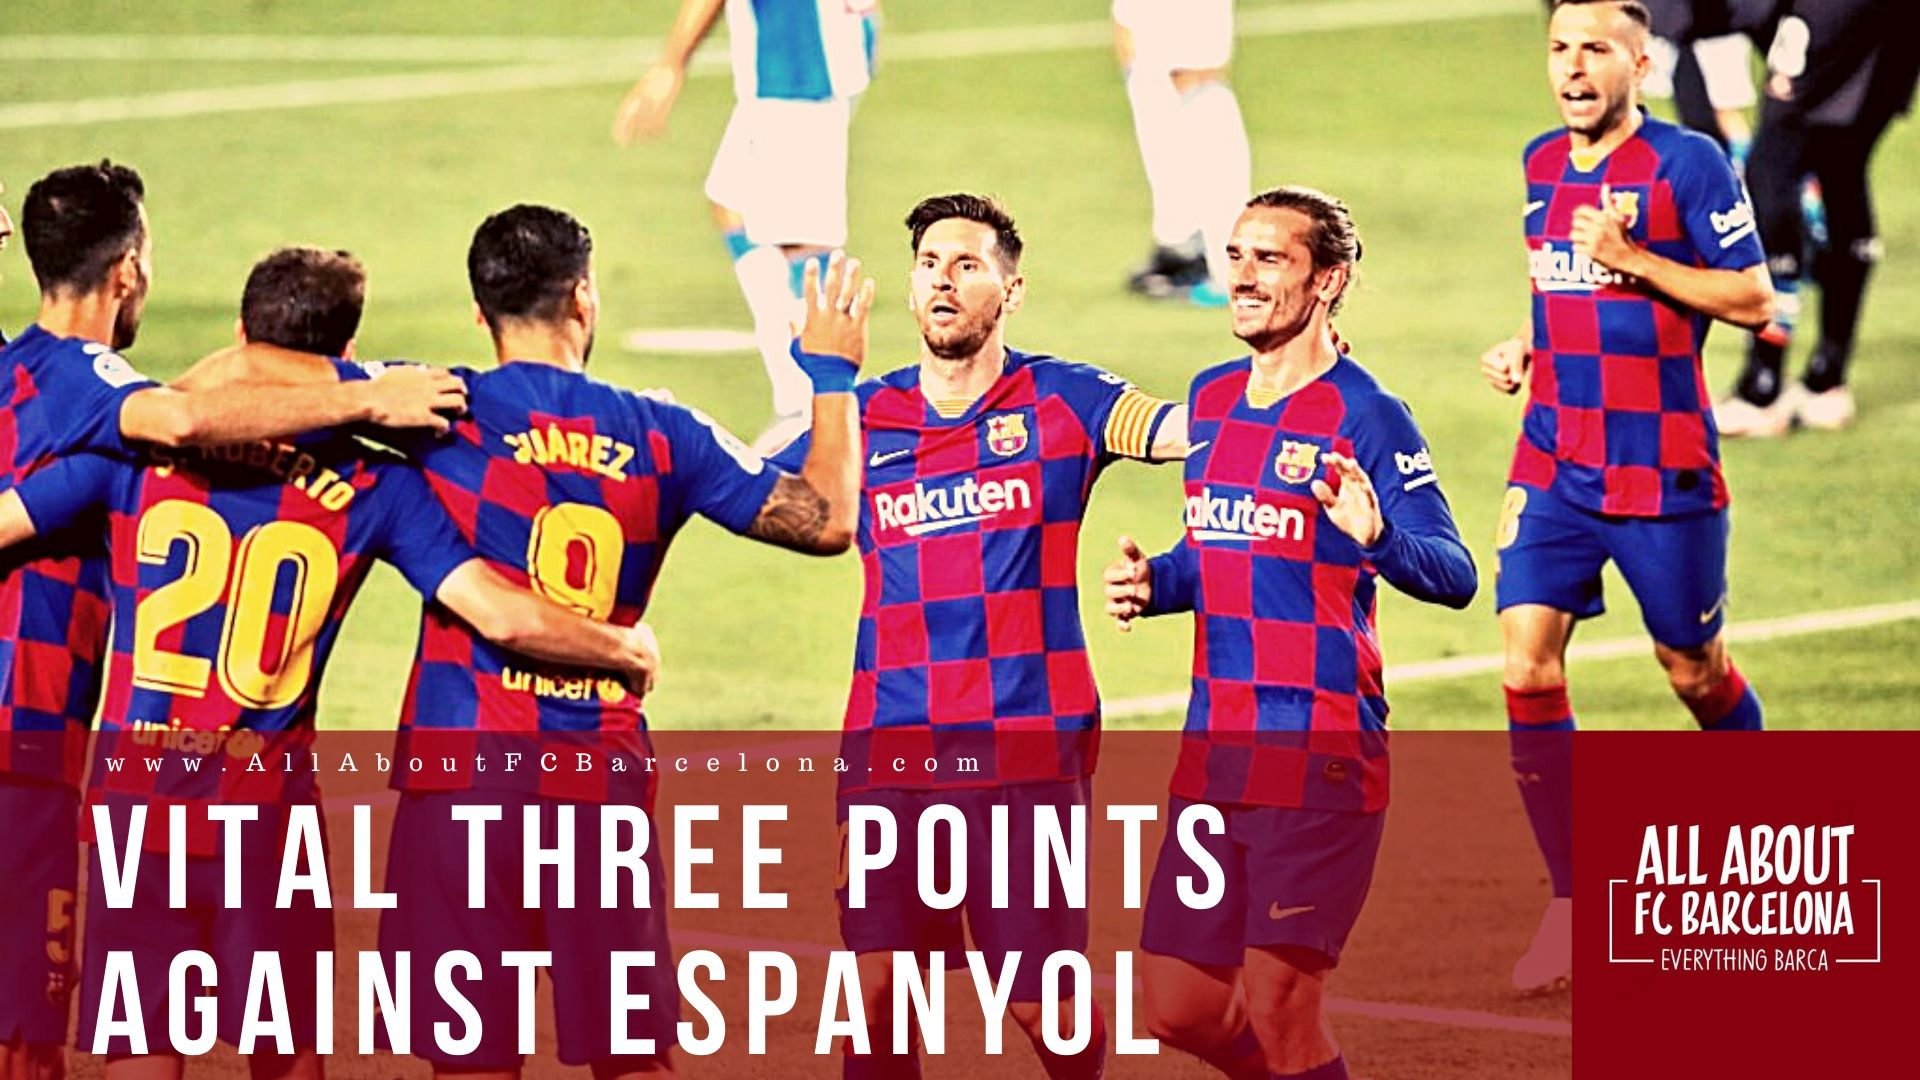 Barcelona Players Celebrating victory over Espanyol